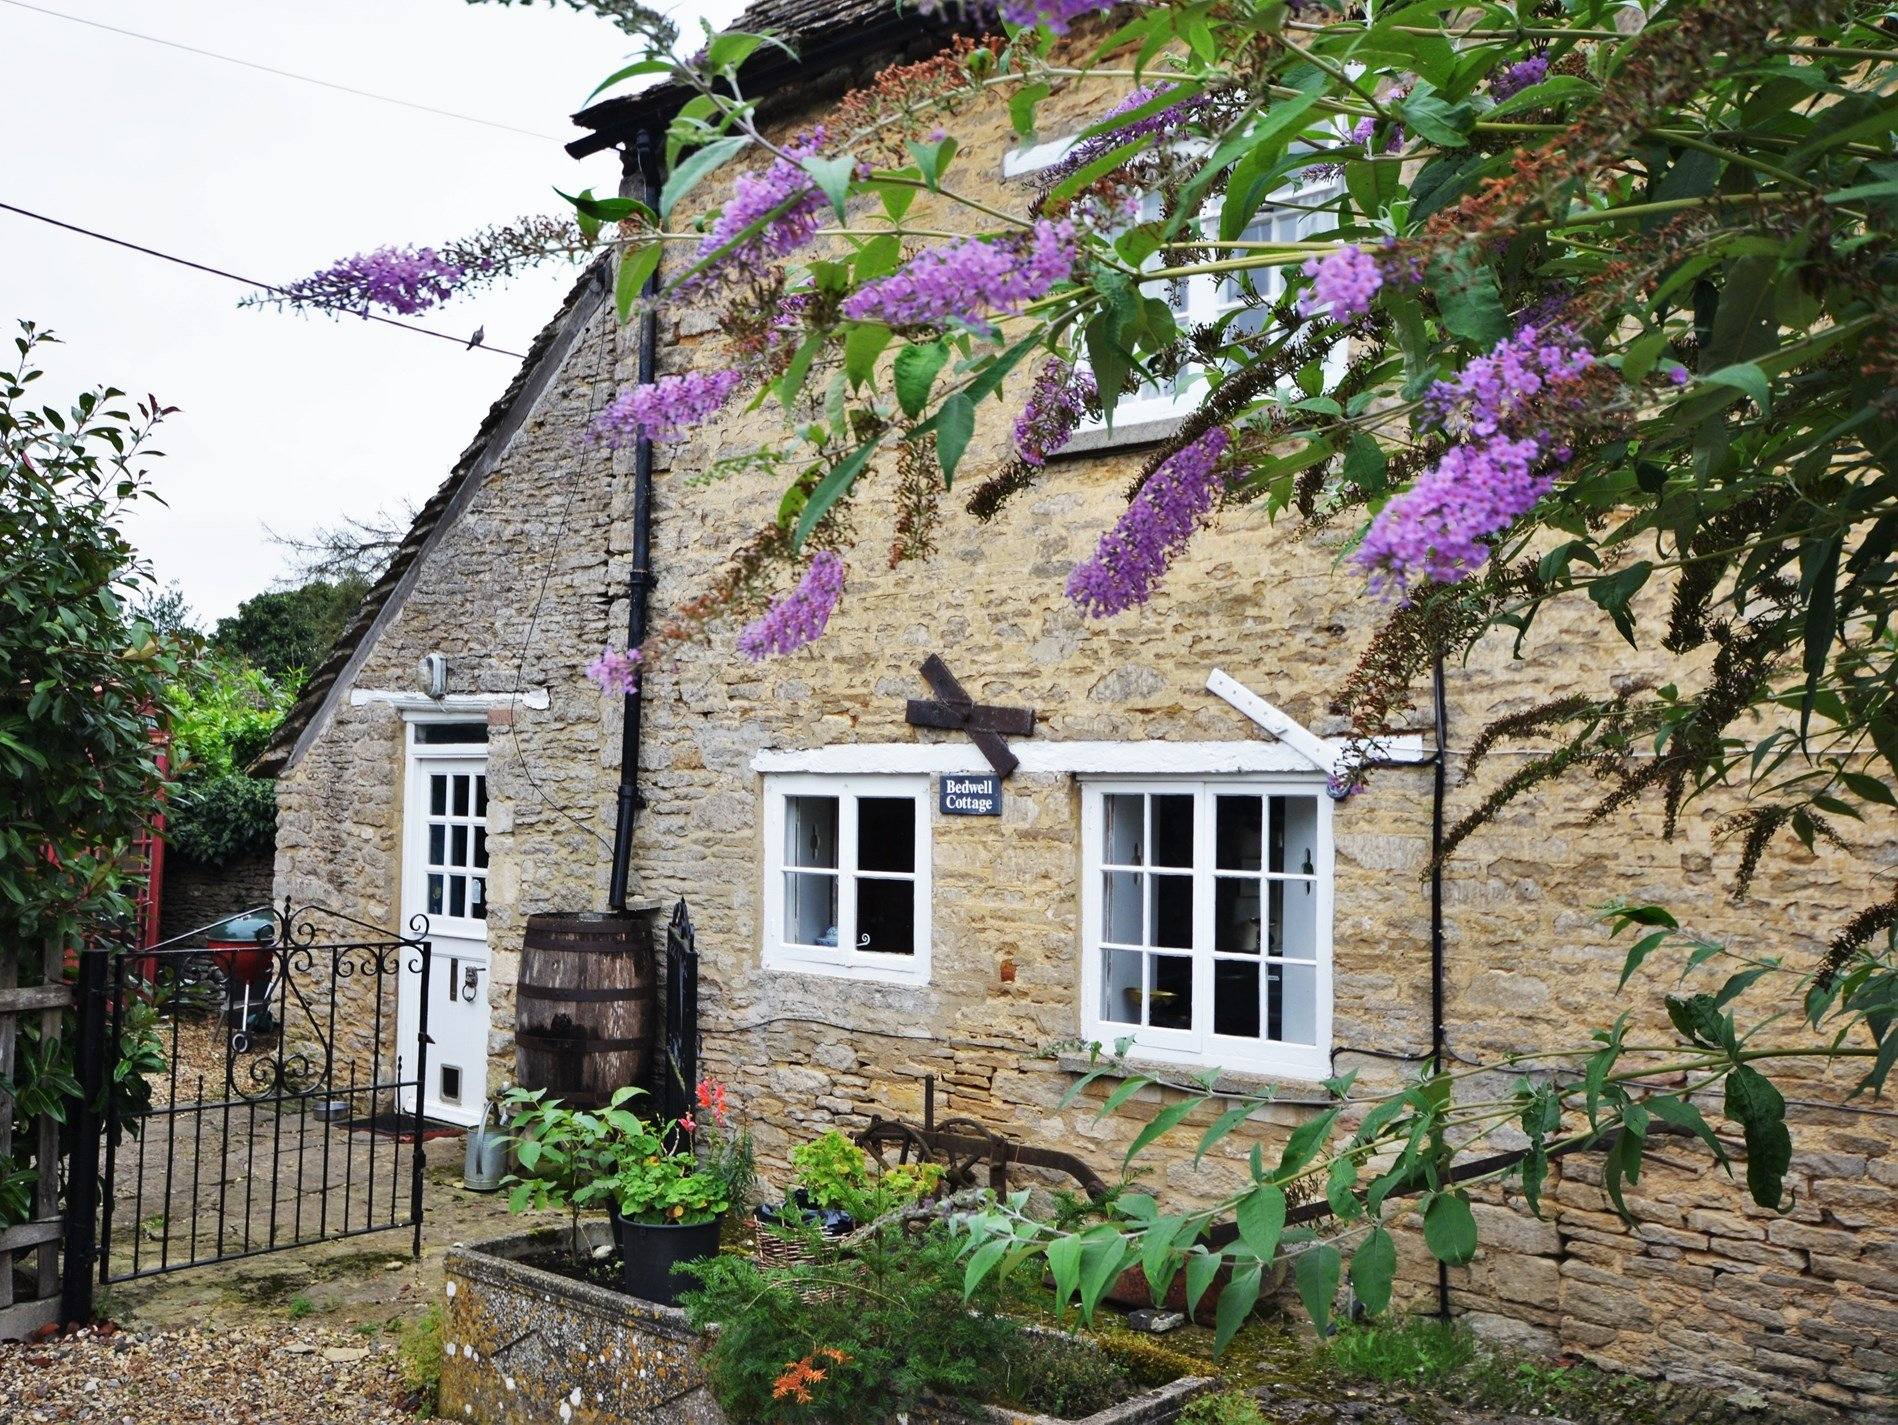 FCH40194, Lechlade